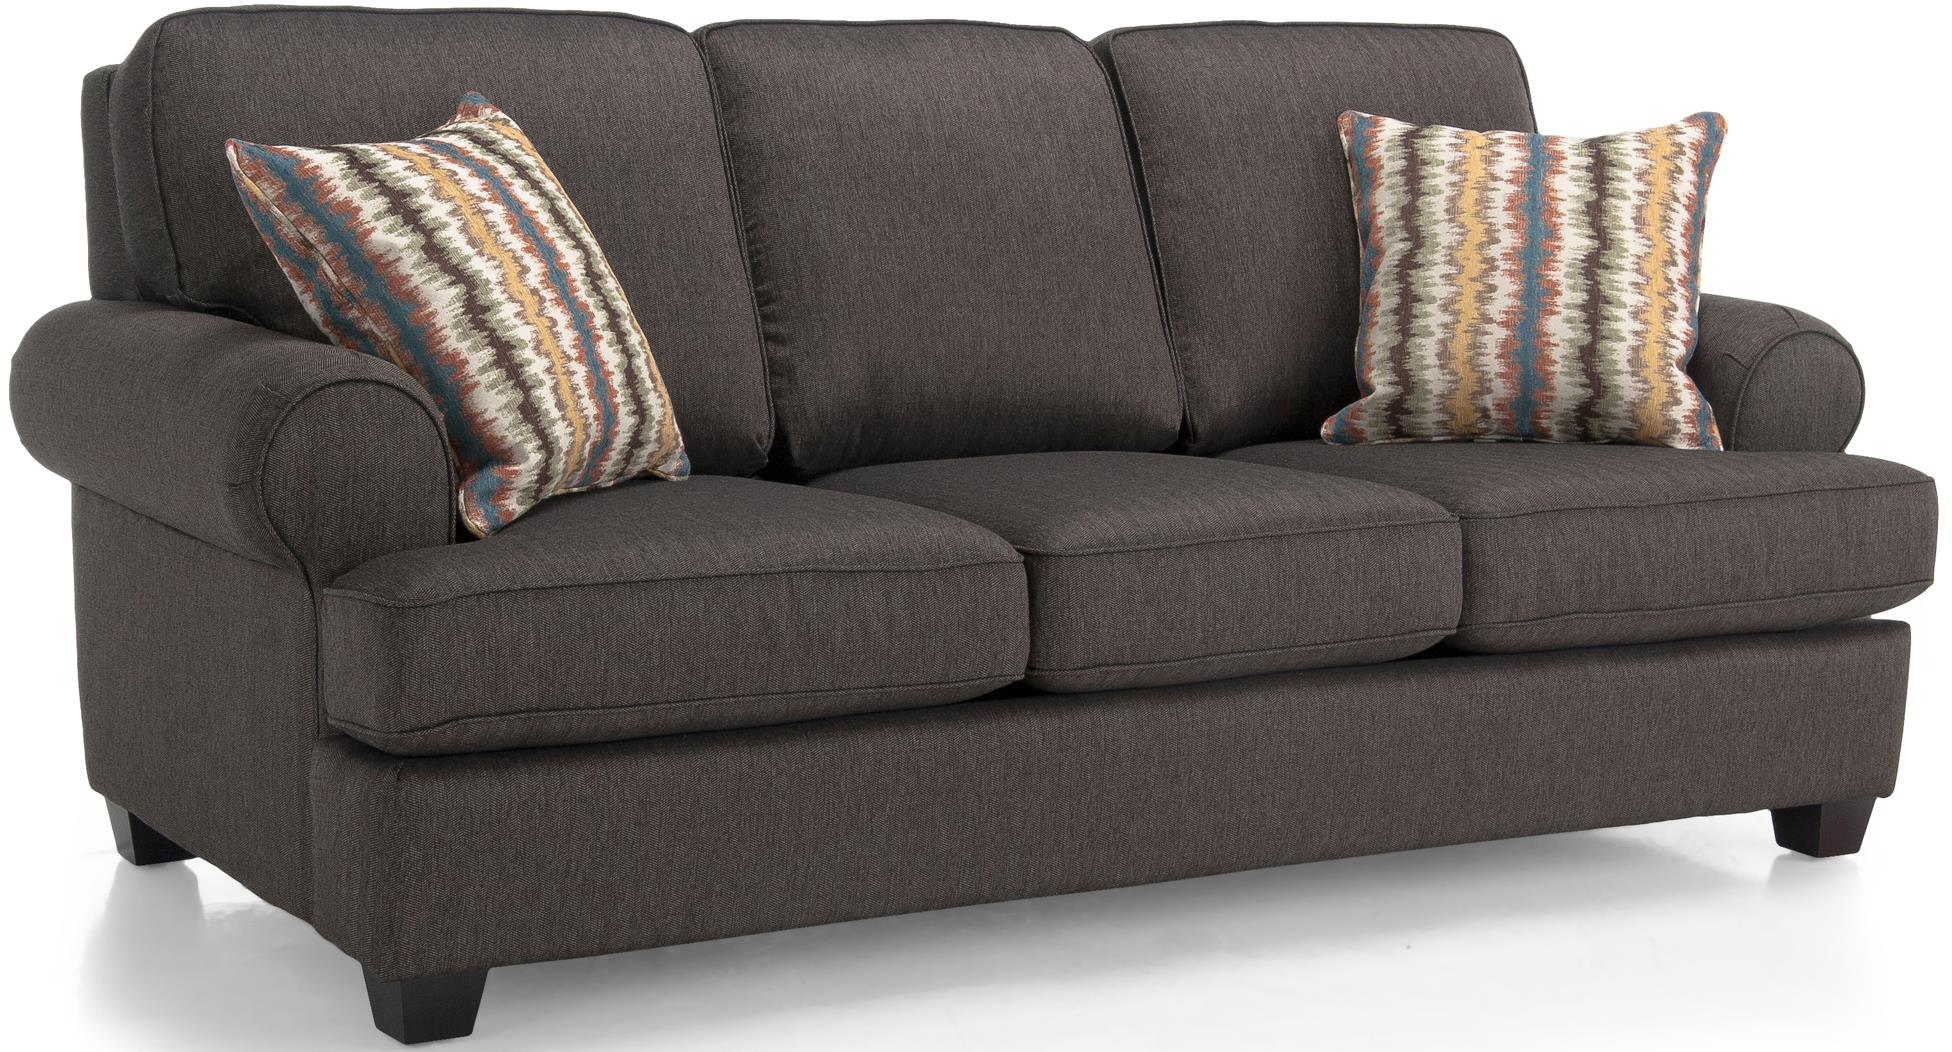 2285 Sofa by Decor-Rest at Stoney Creek Furniture